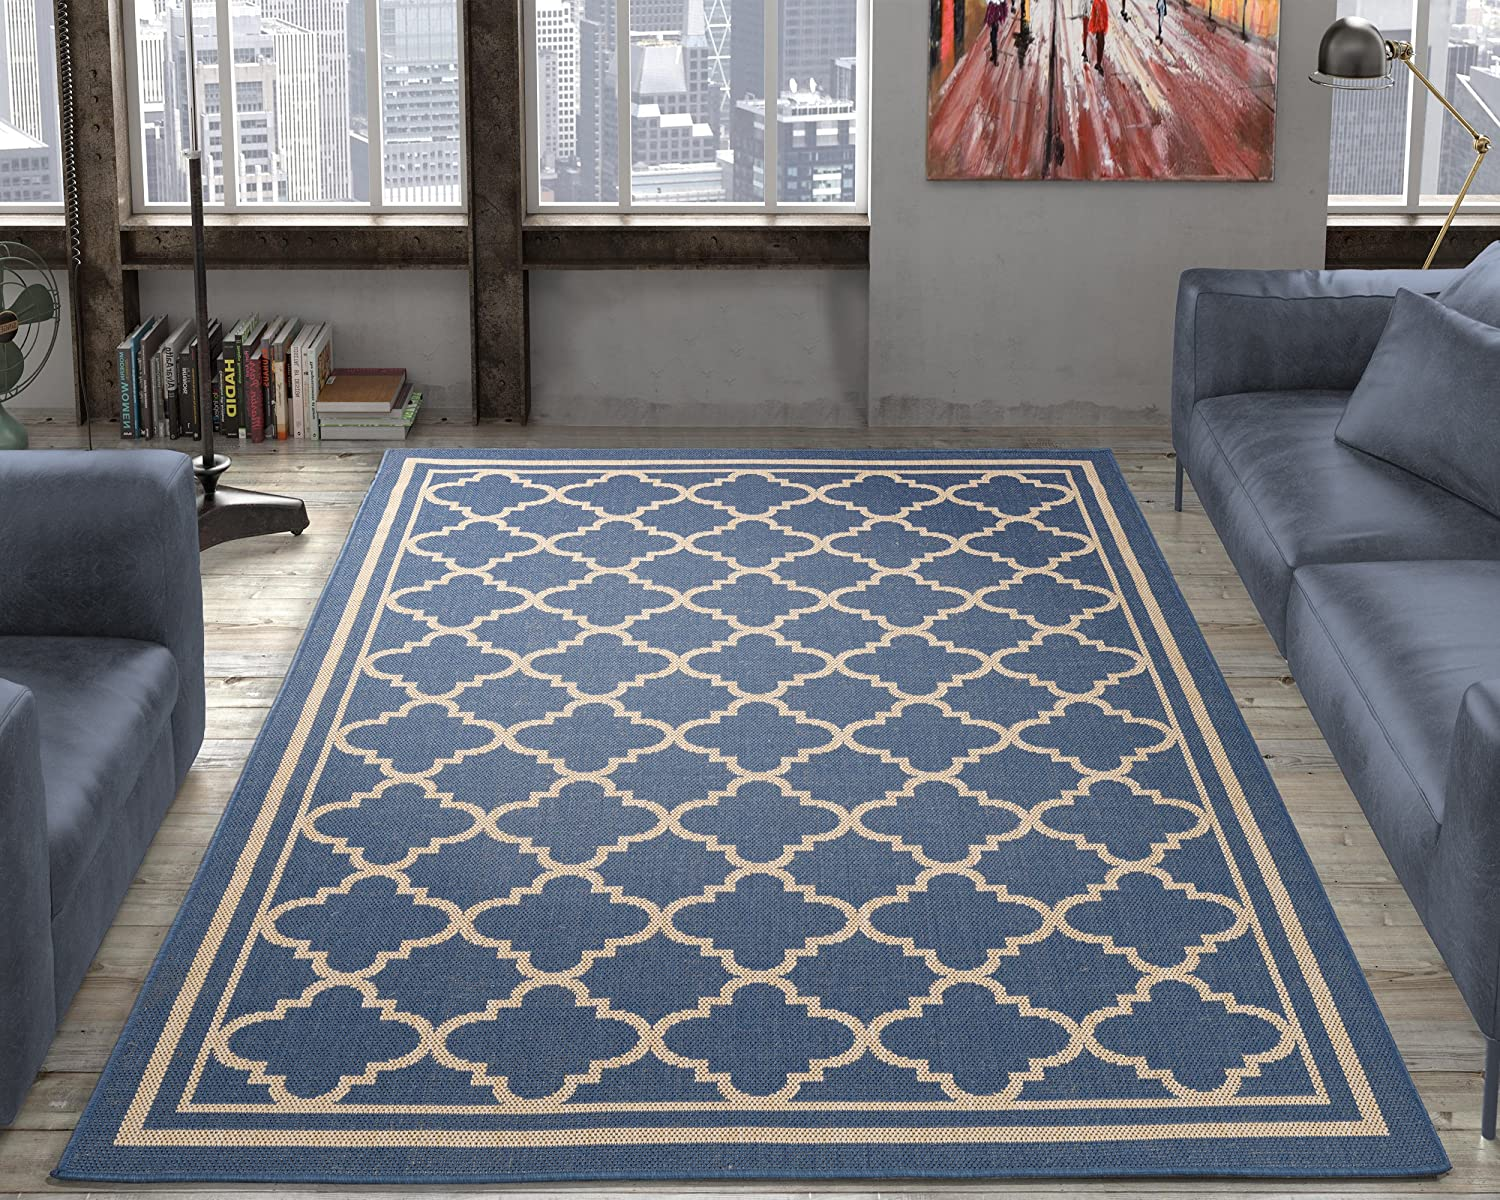 Amazon.com: Ottomanson Jardin Collection - Alfombra de yute ...